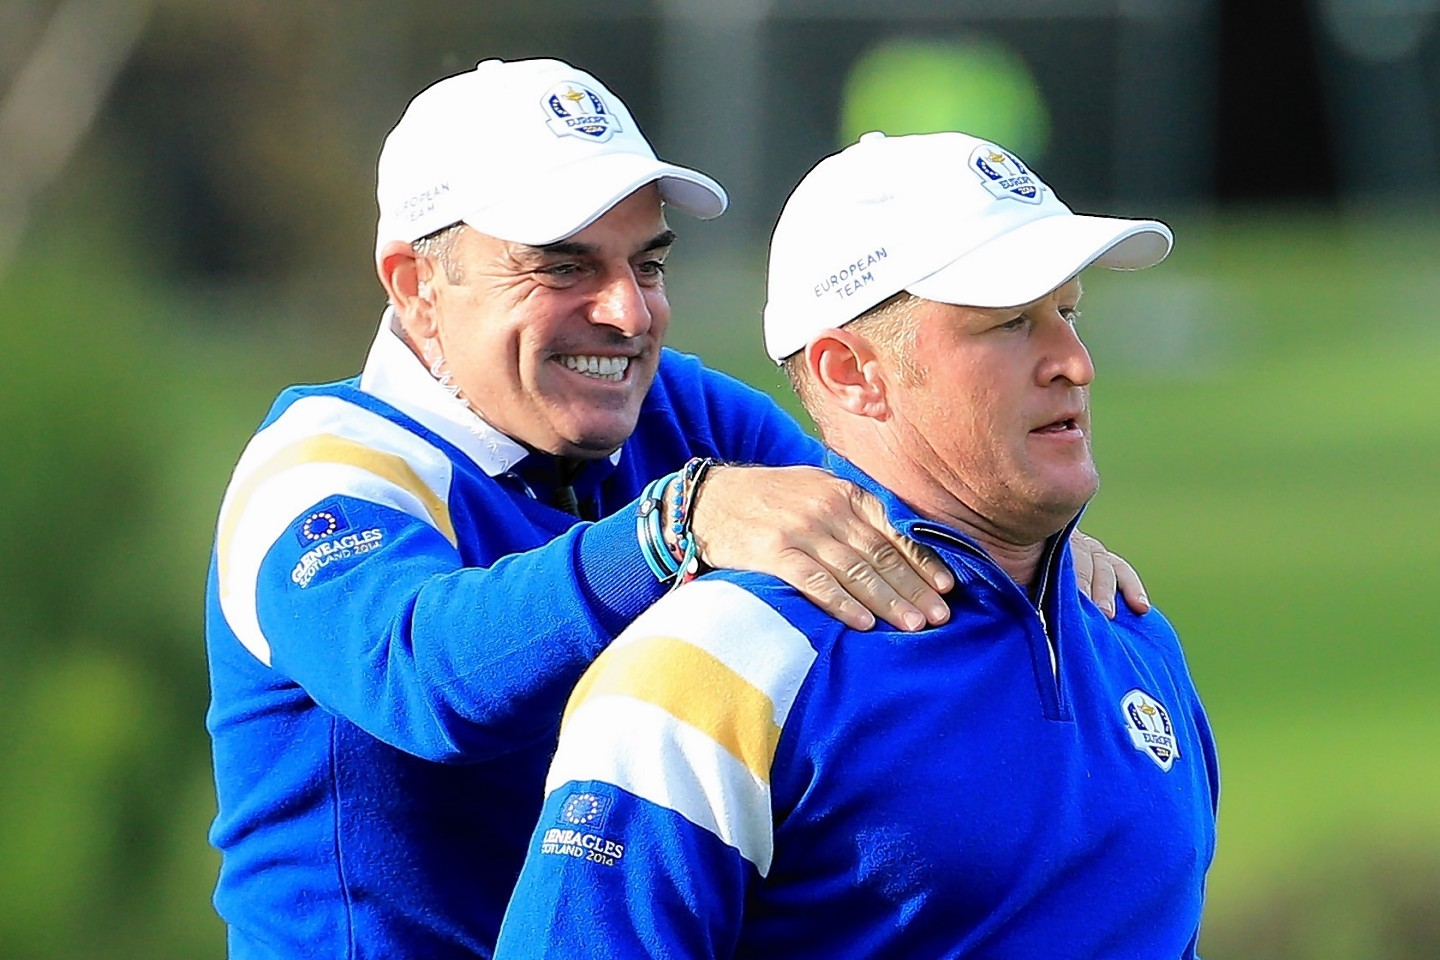 And he wasted no time - immediately rushing over to congratulate star man Jamie Donaldson